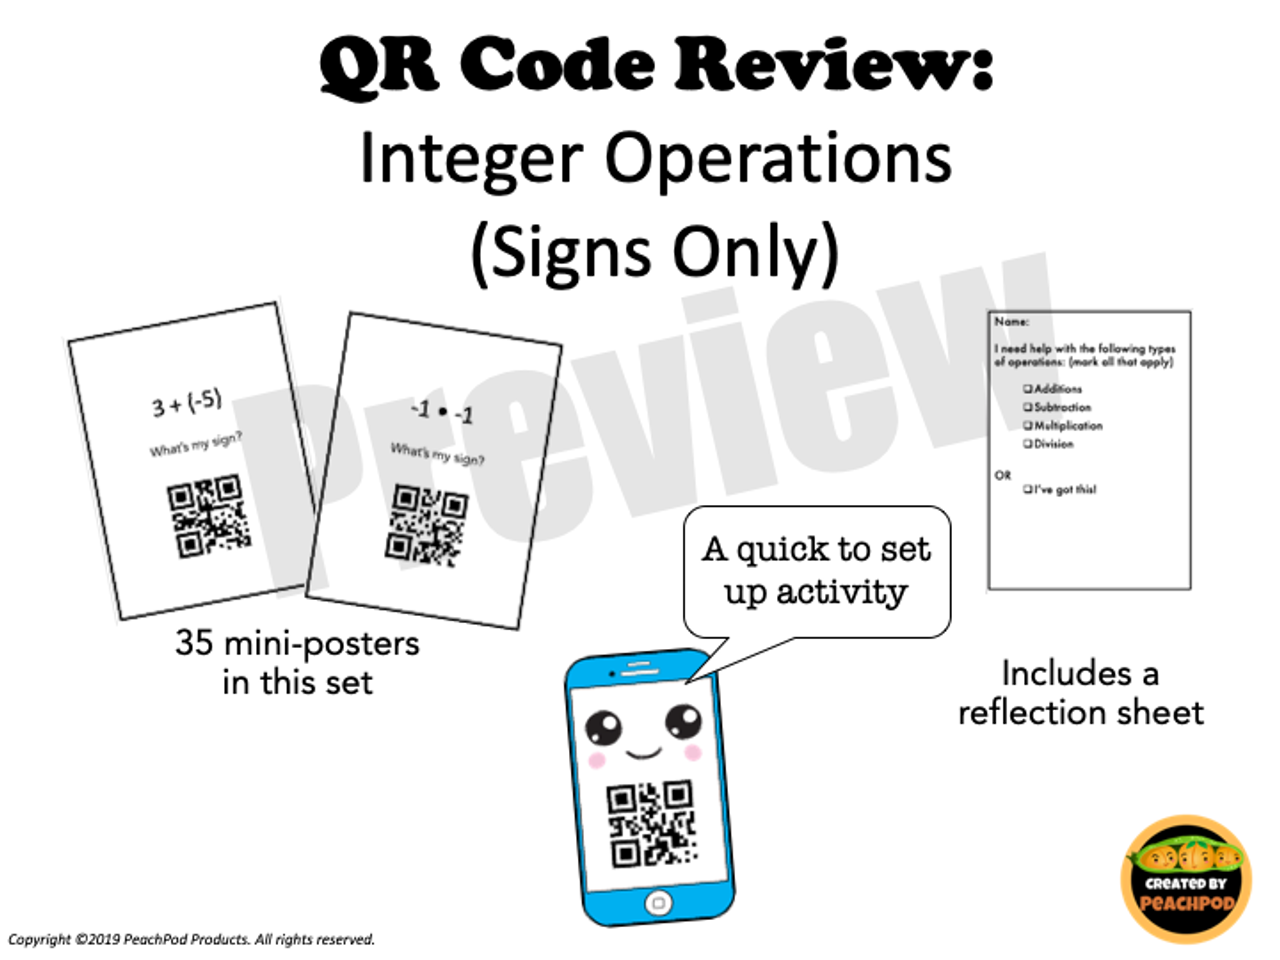 QR Code Review: Integer Operations (Signs Only)